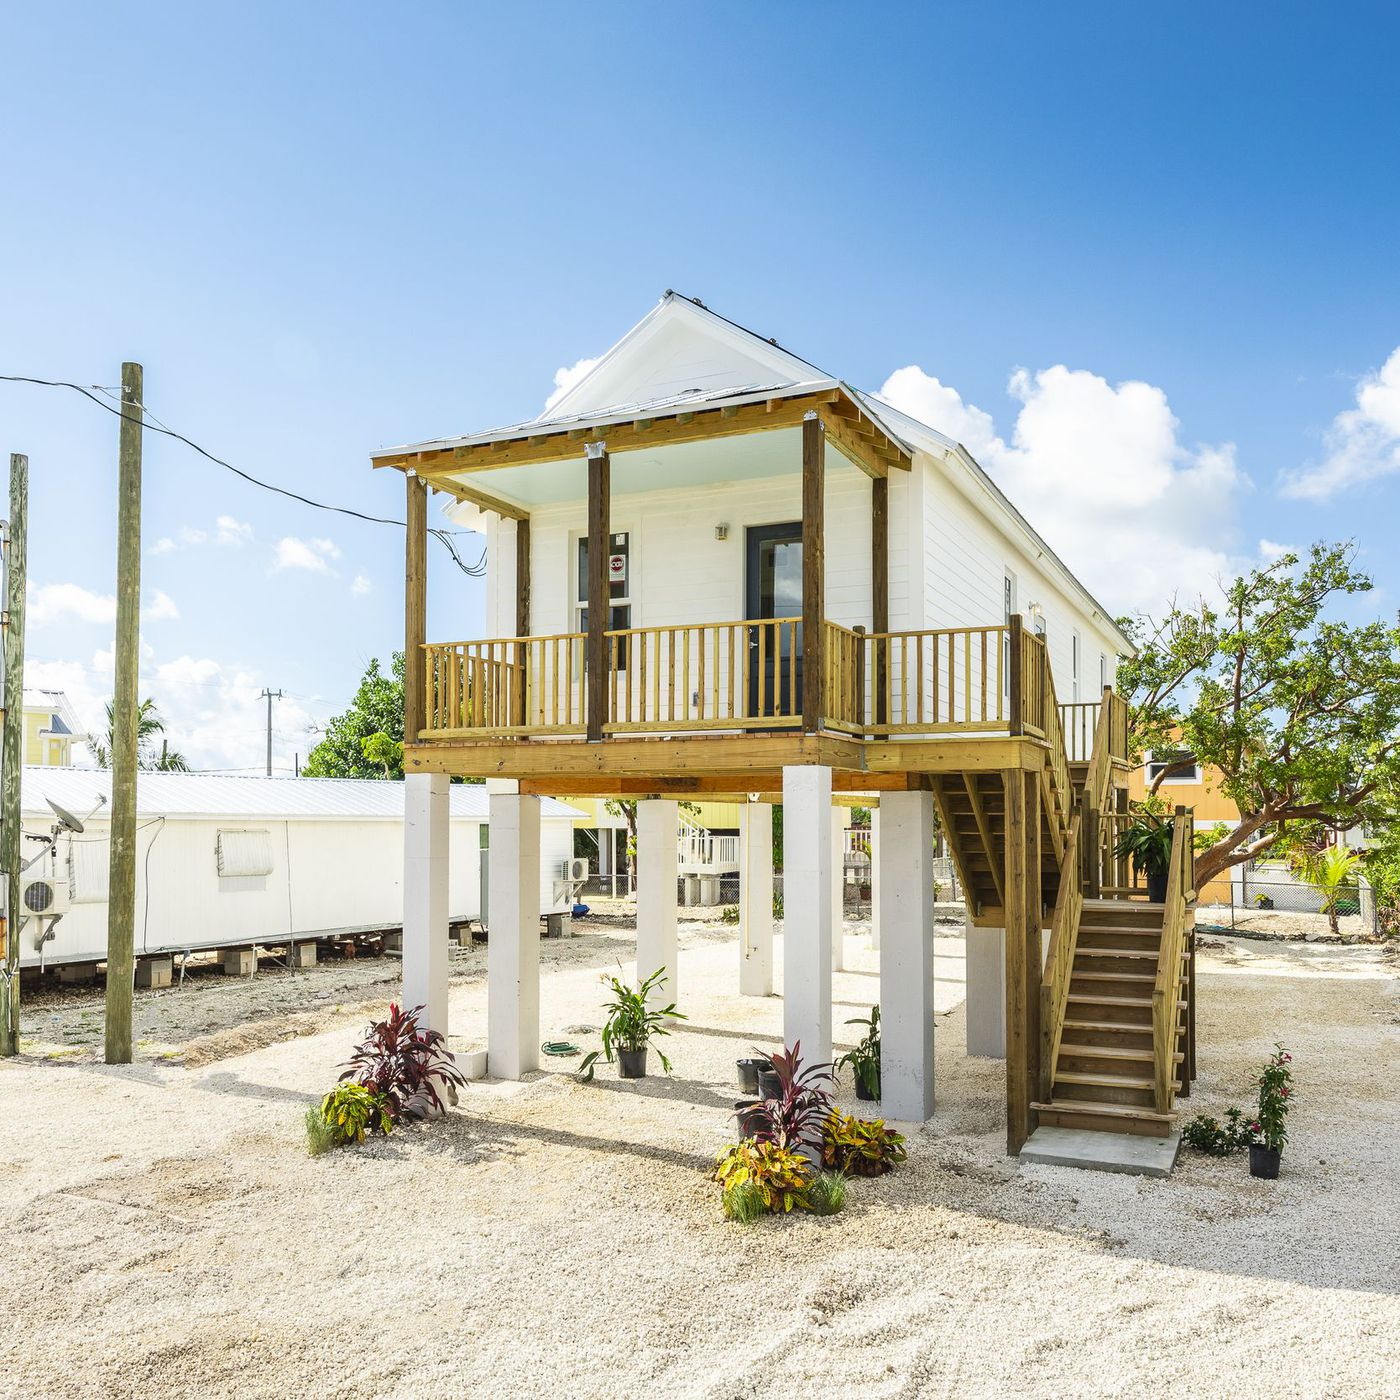 Florida Keys Community Land Trust Aims To Bring Affordable Housing